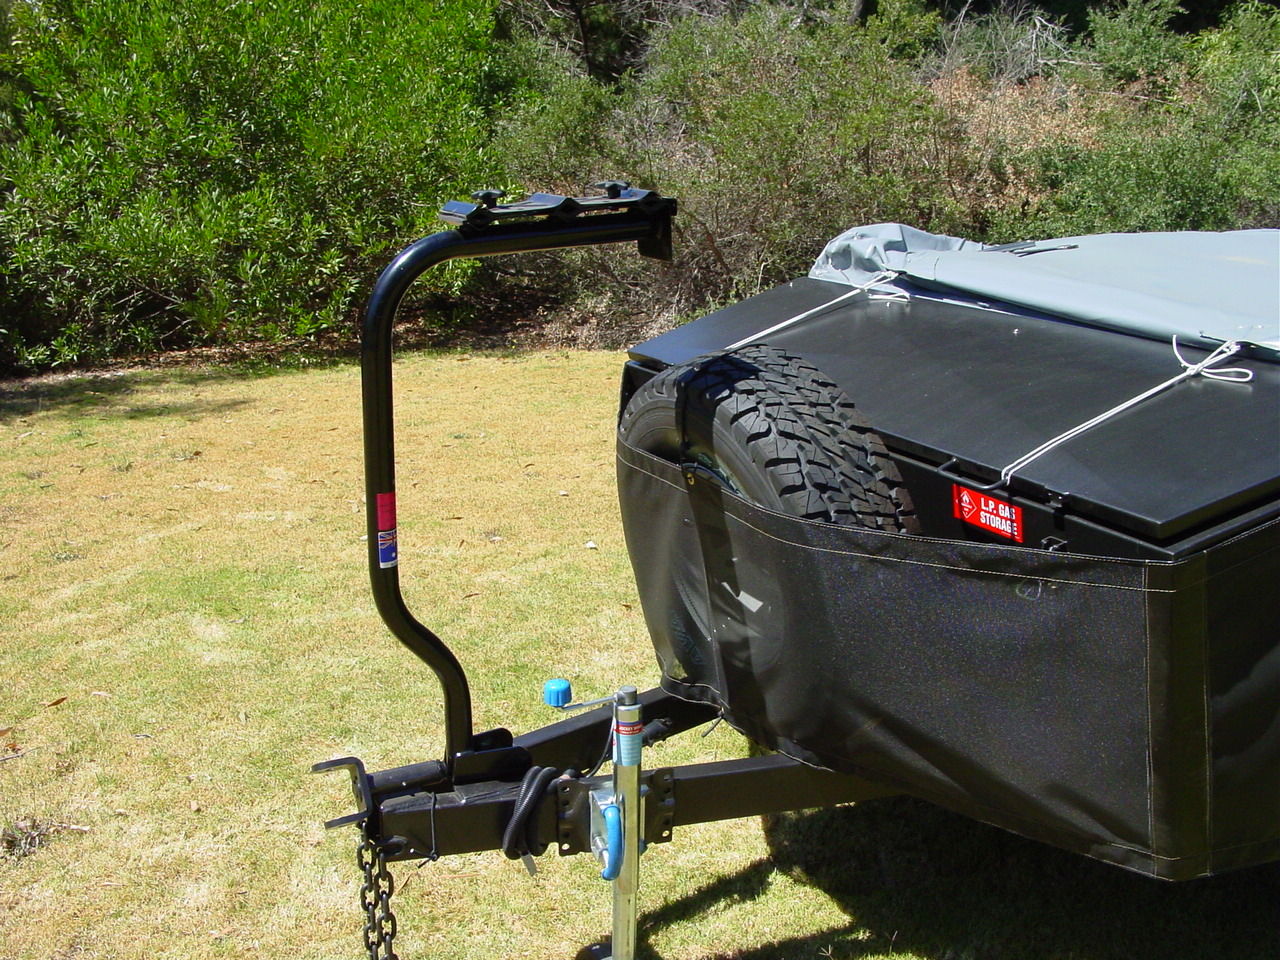 Bike Camper Trailer Sturt Off Road Camper Outback Campers Camper Trailers Melbourne